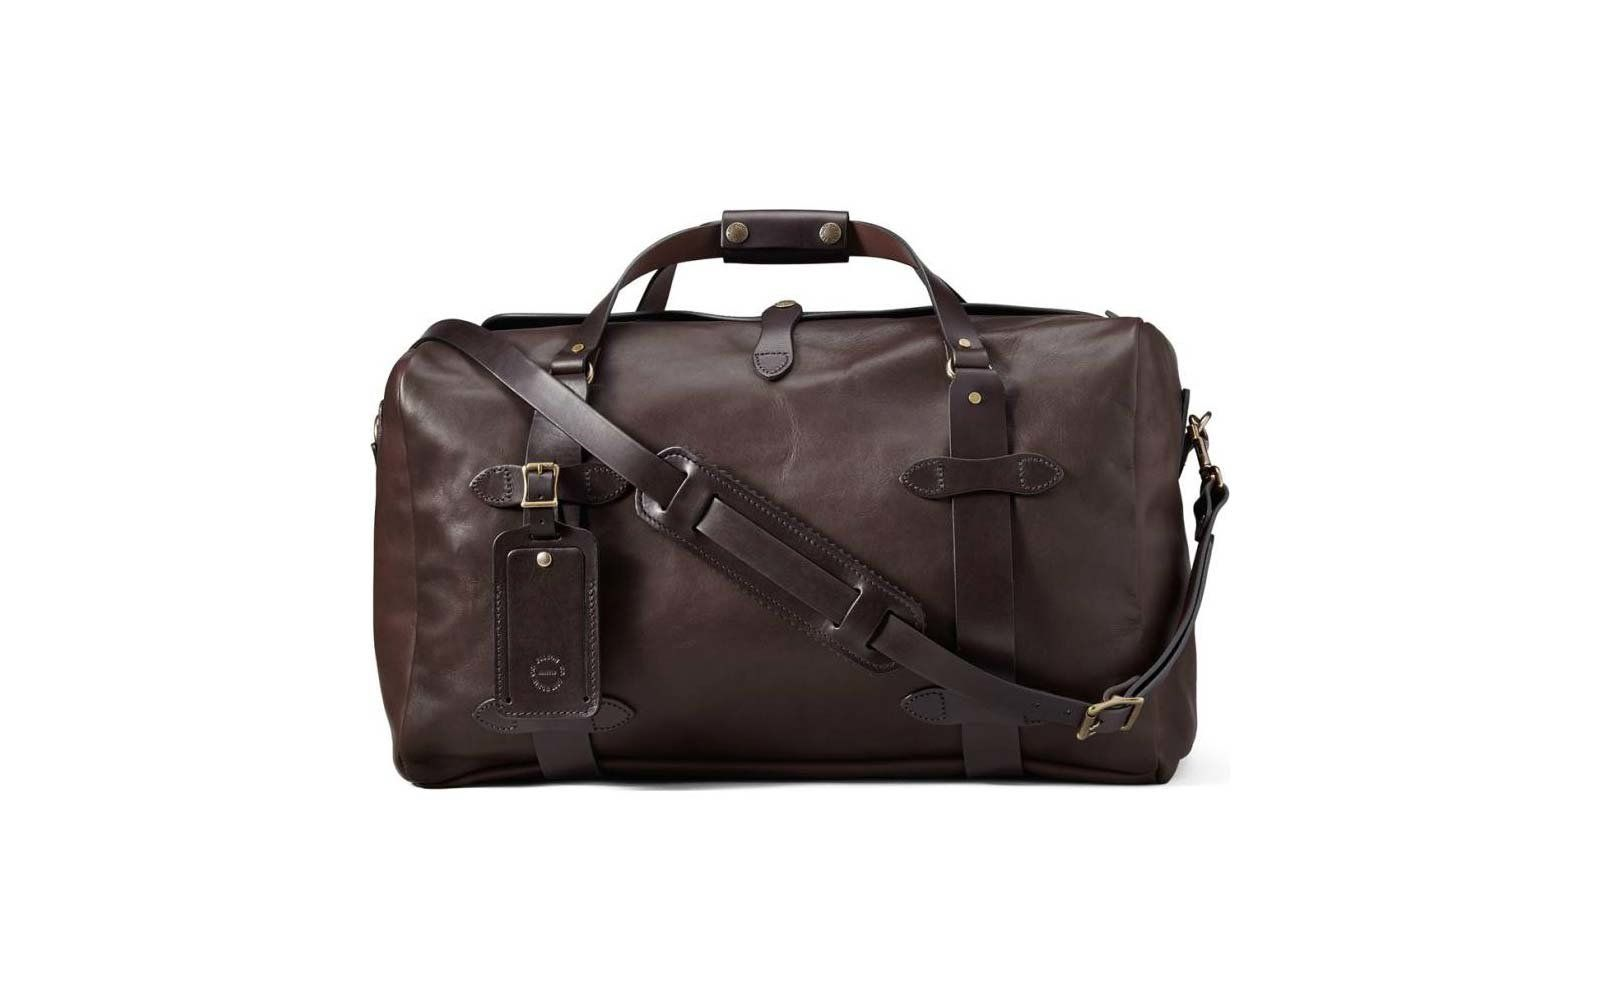 dbd3297059008d 11 Leather Overnight Bags That Will Last You Forever